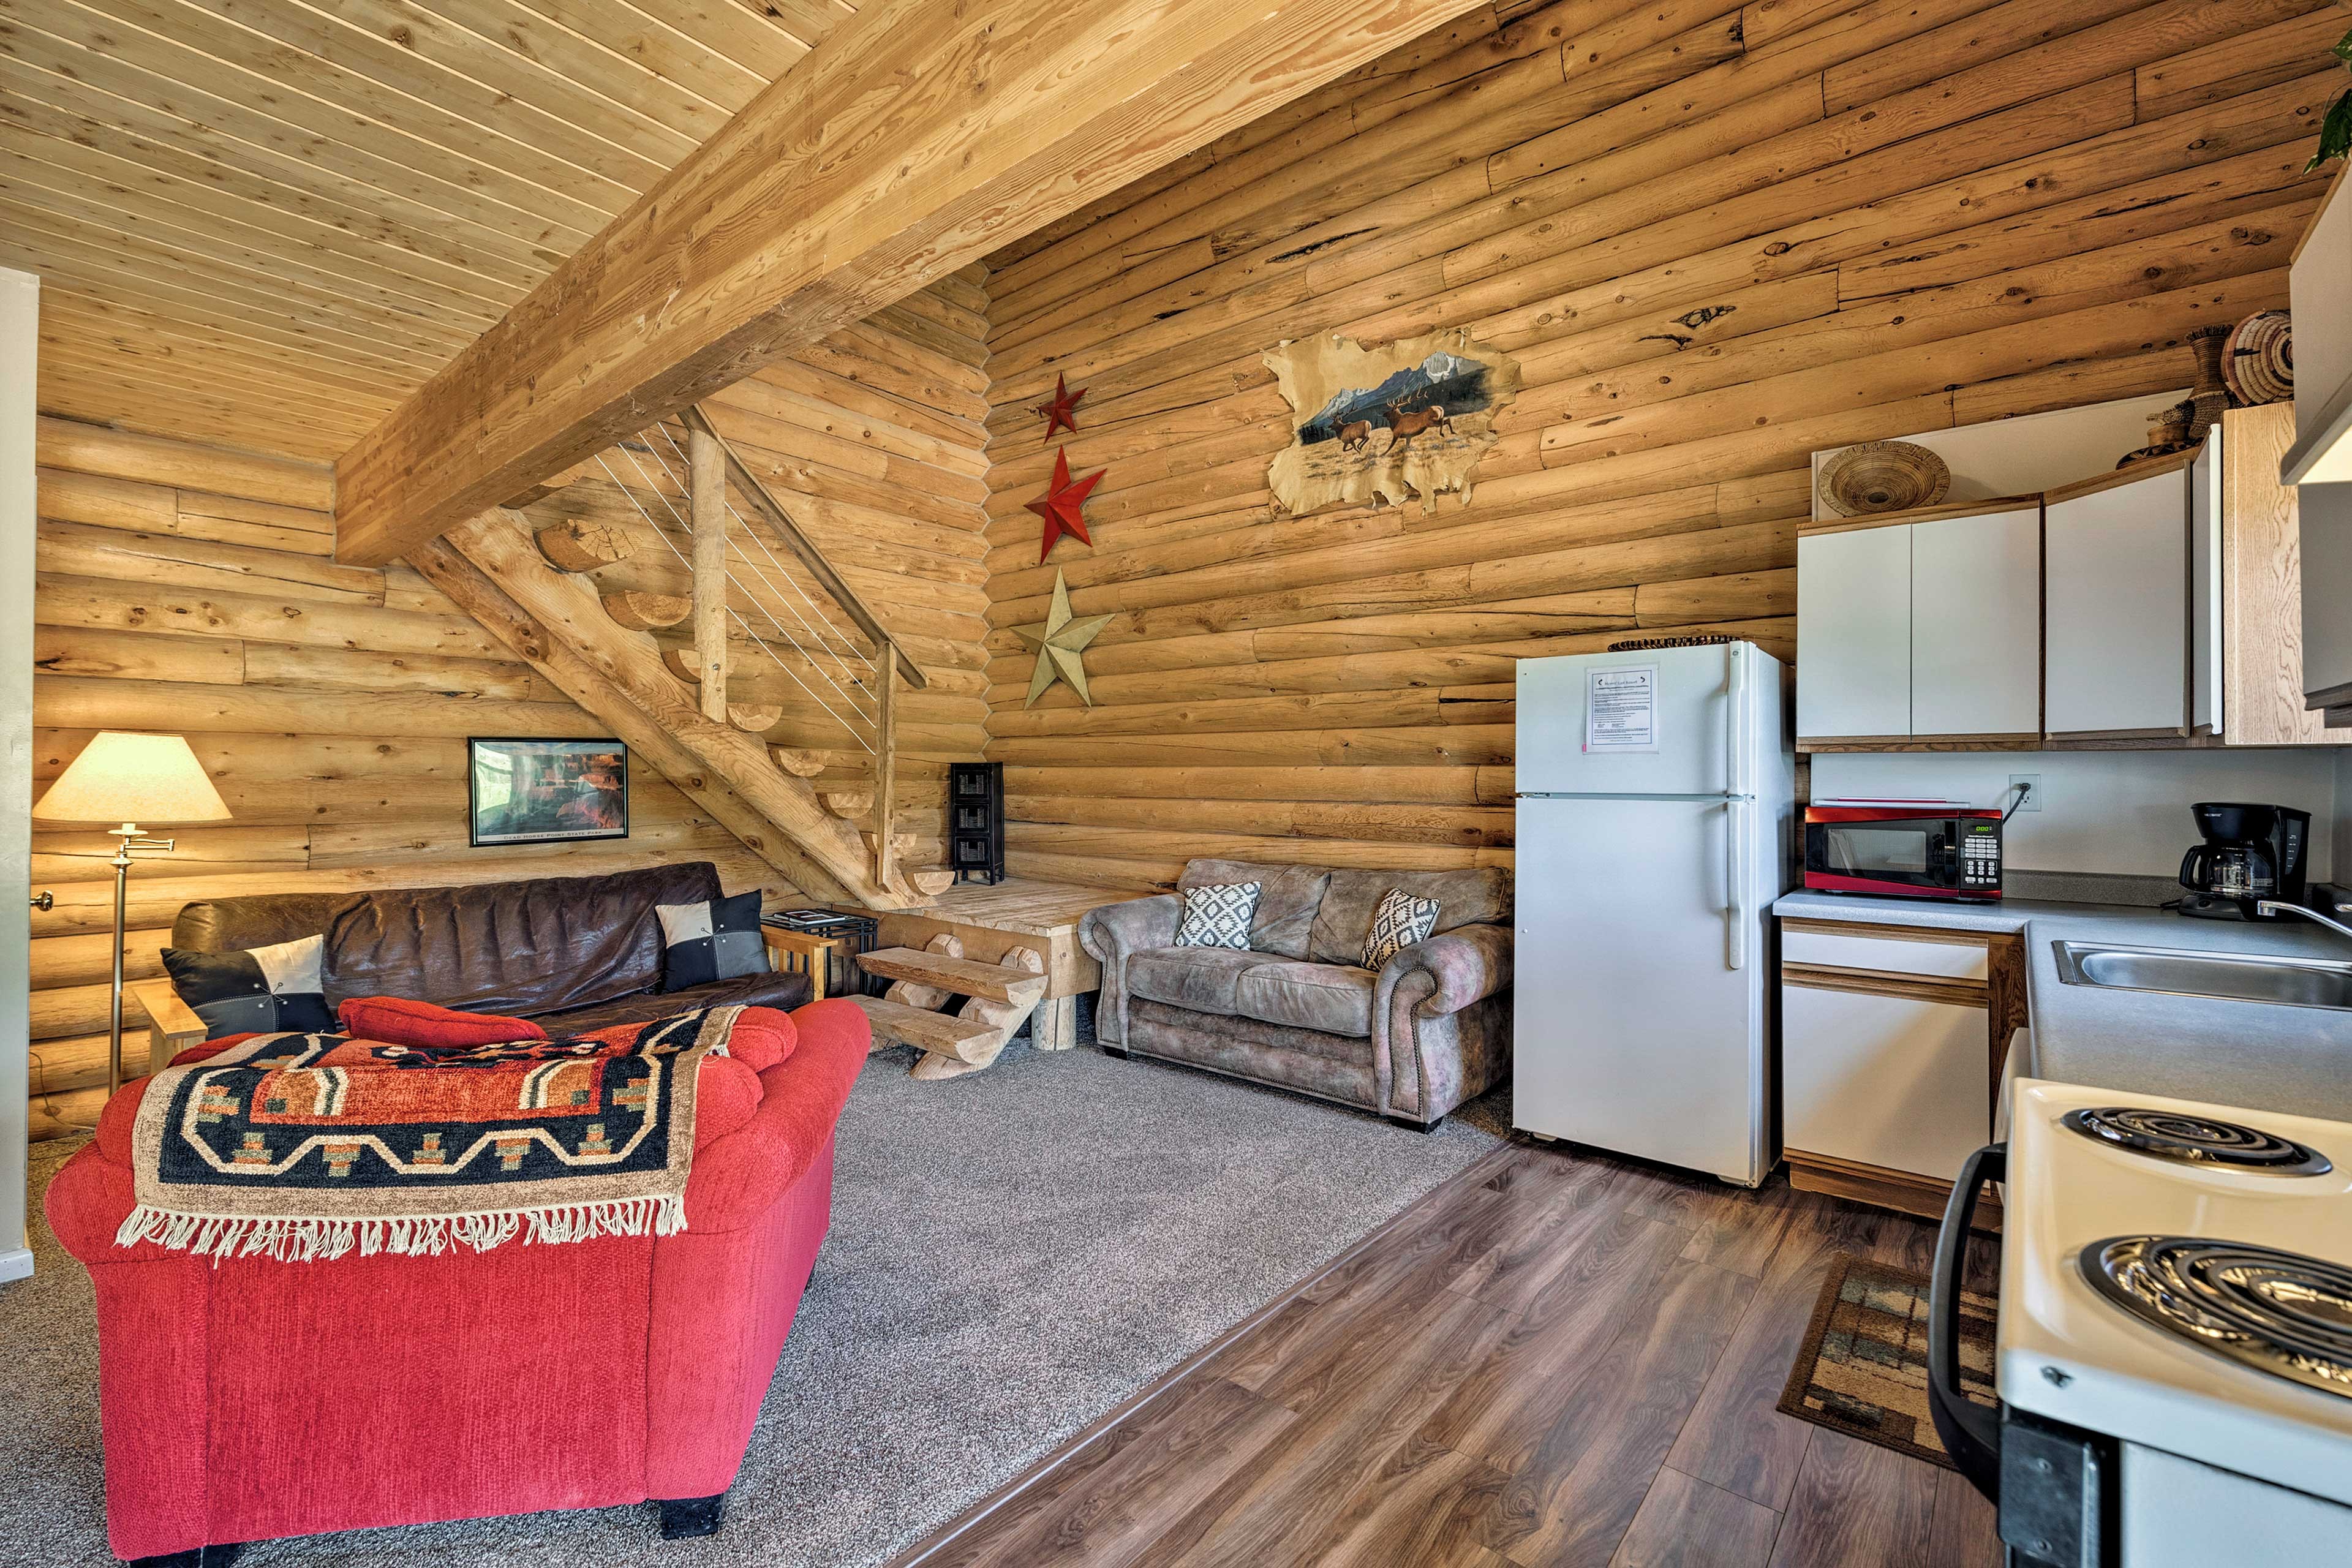 Rustic decor highlights this authentic log cabin.